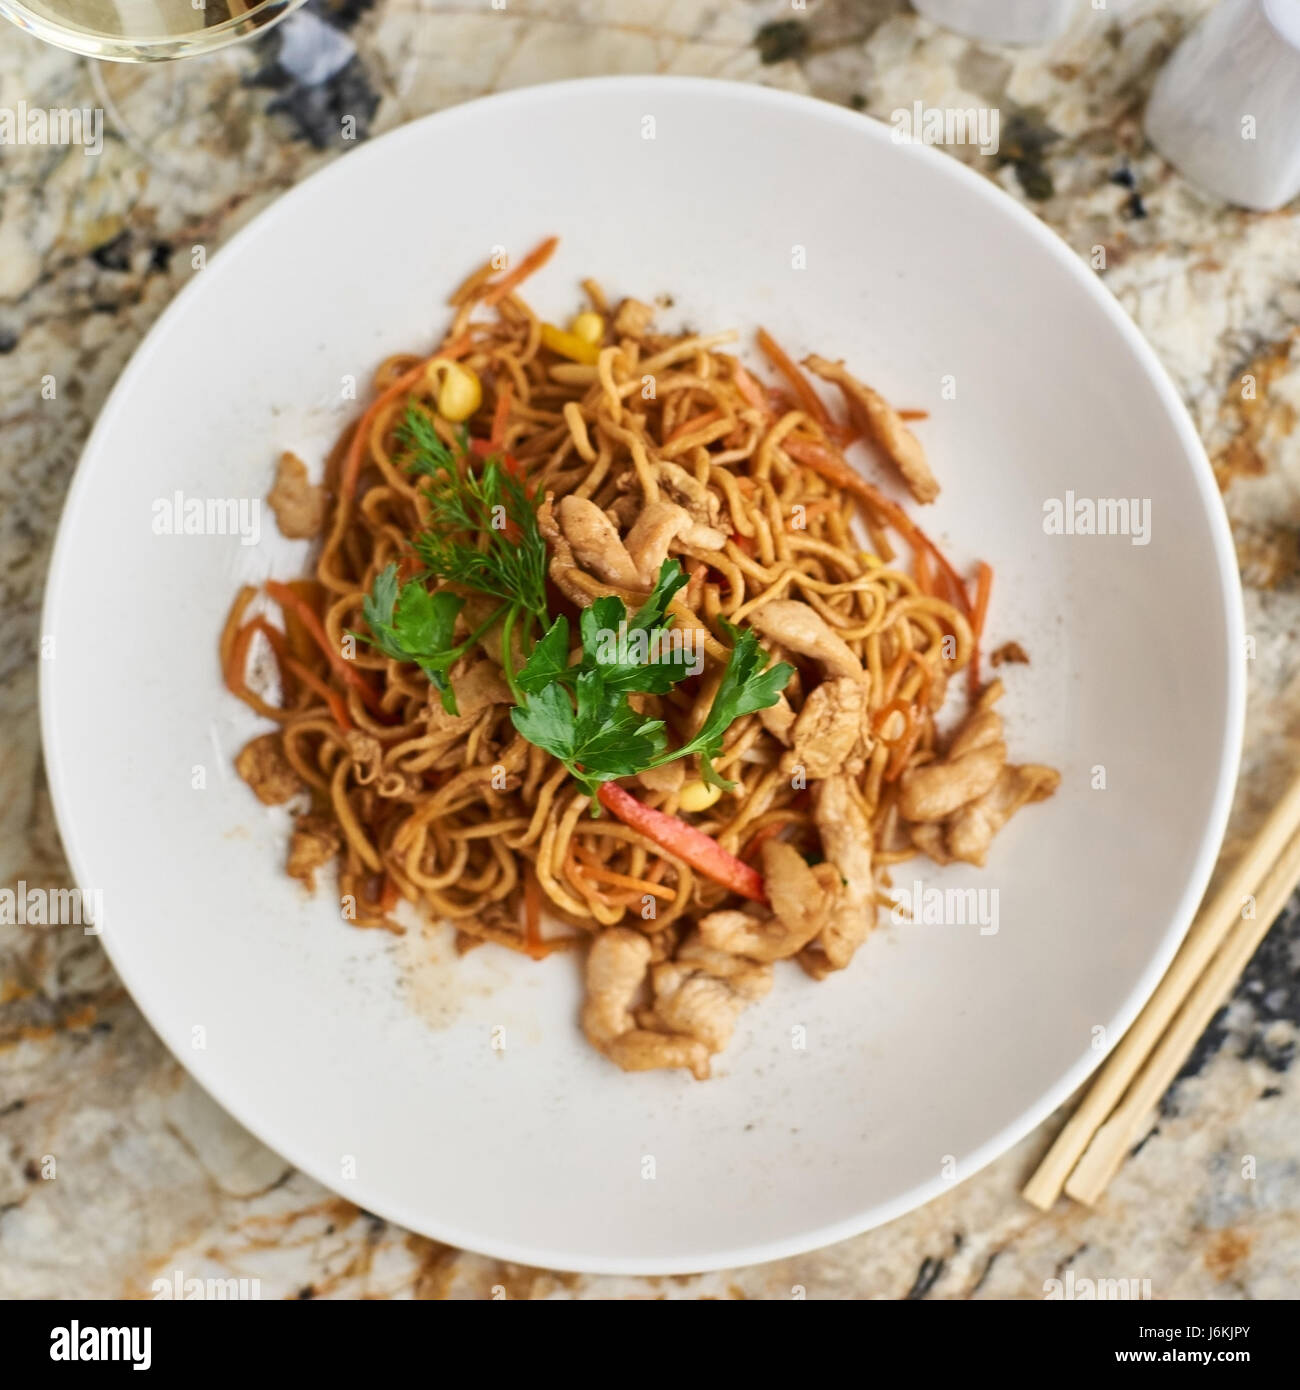 Thin noodles with chicken slices - Stock Image